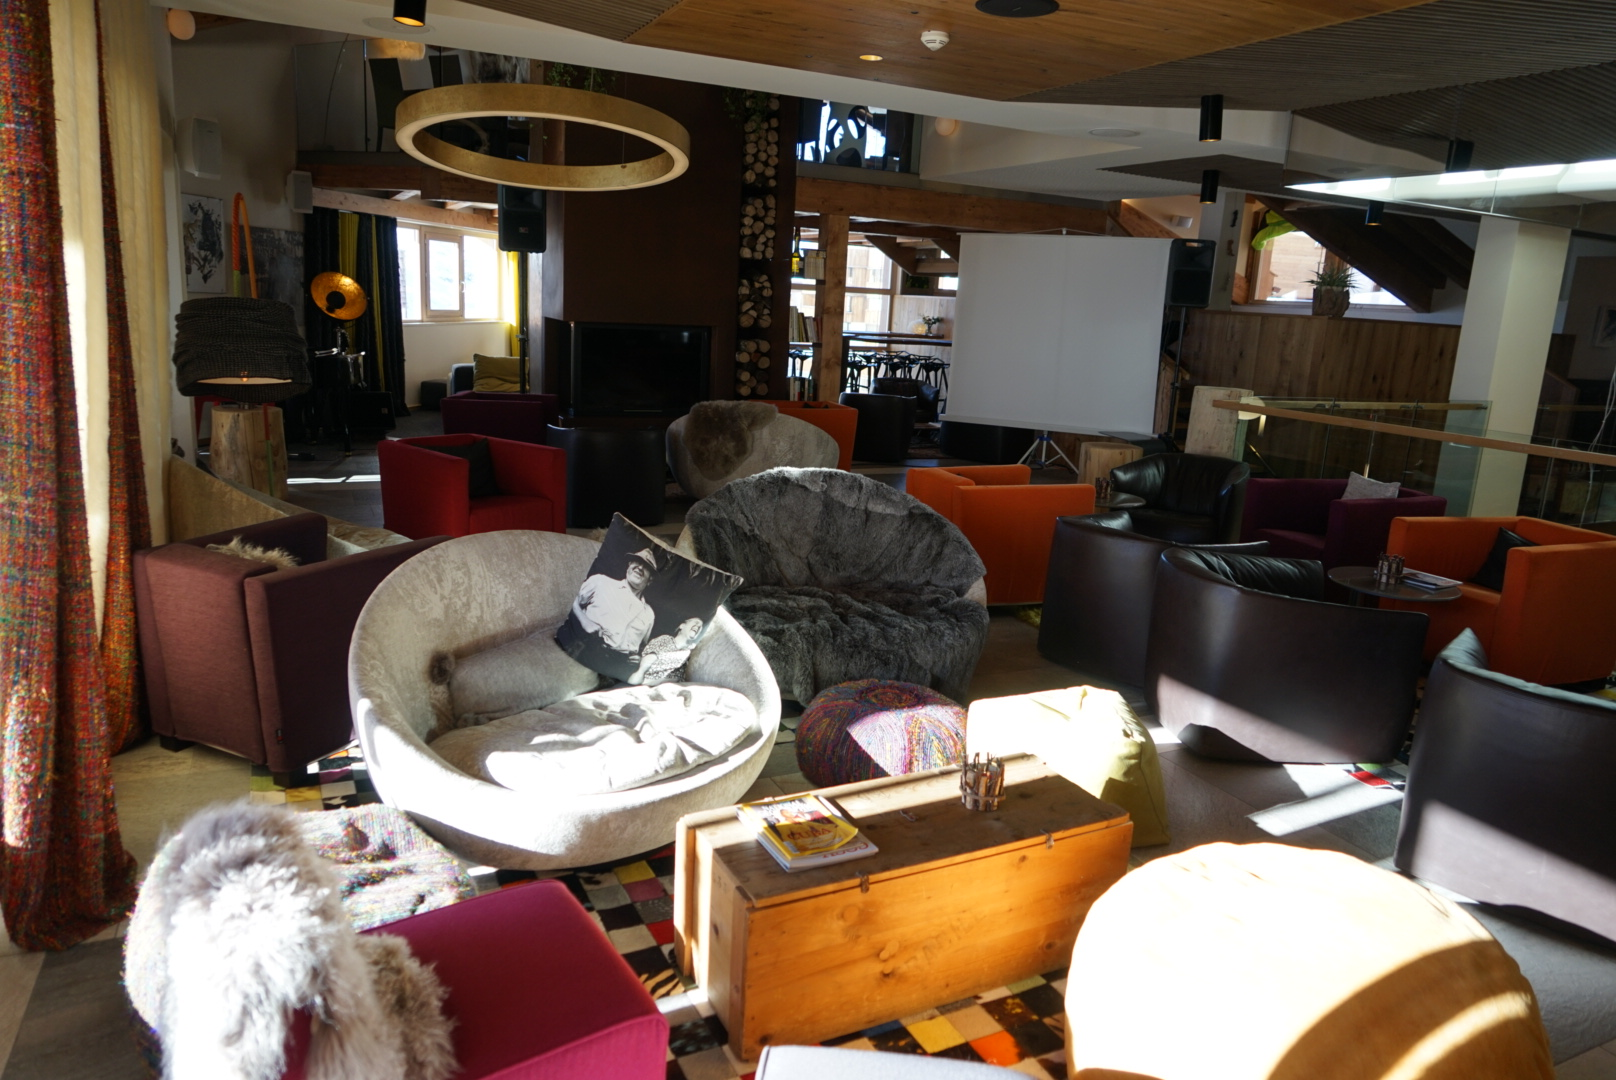 lounge, fireplace, library, val thorens, pashmina, hotel, pashmina hotel, refuge, terrace, mountain, trip, holidays